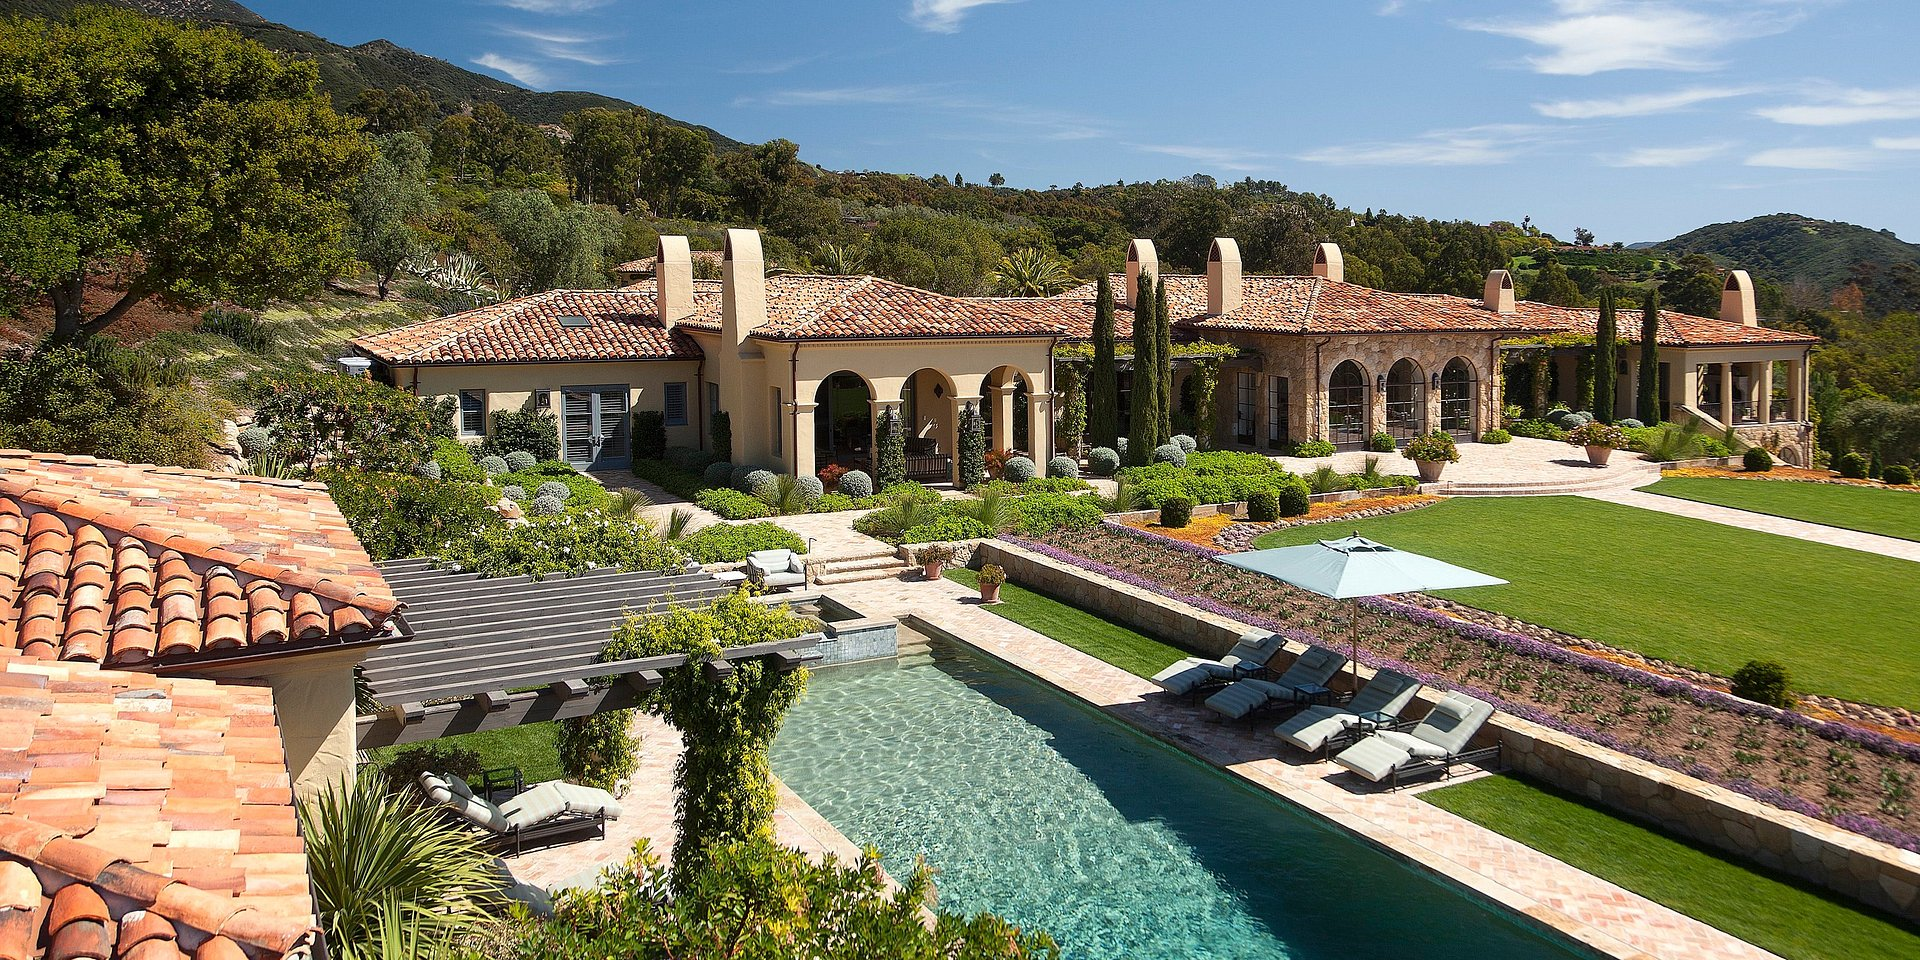 Coldwell Banker's Hyatt Riaz Announces Newly Listed Montecito Property for $17,000,000